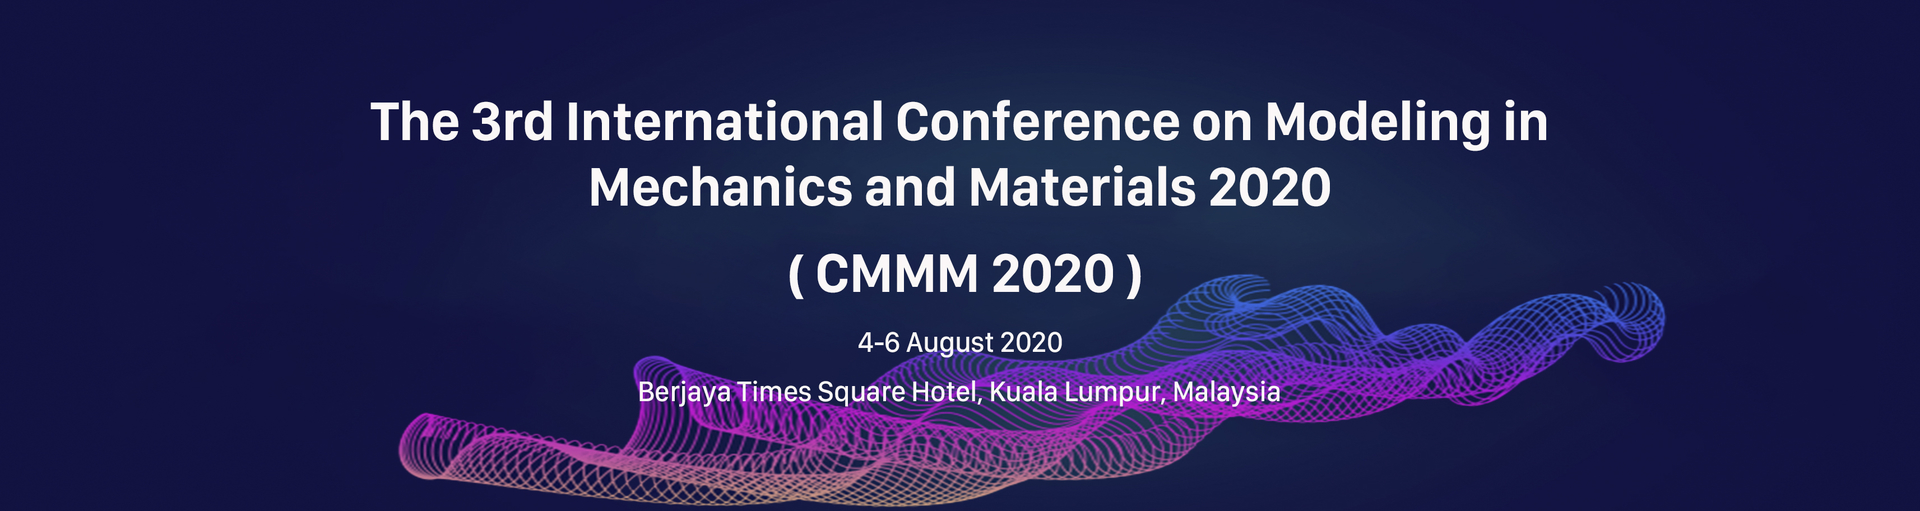 The 3rd International Conference on Modeling in Mechanics and Materials 2020 (CMMM 2020)